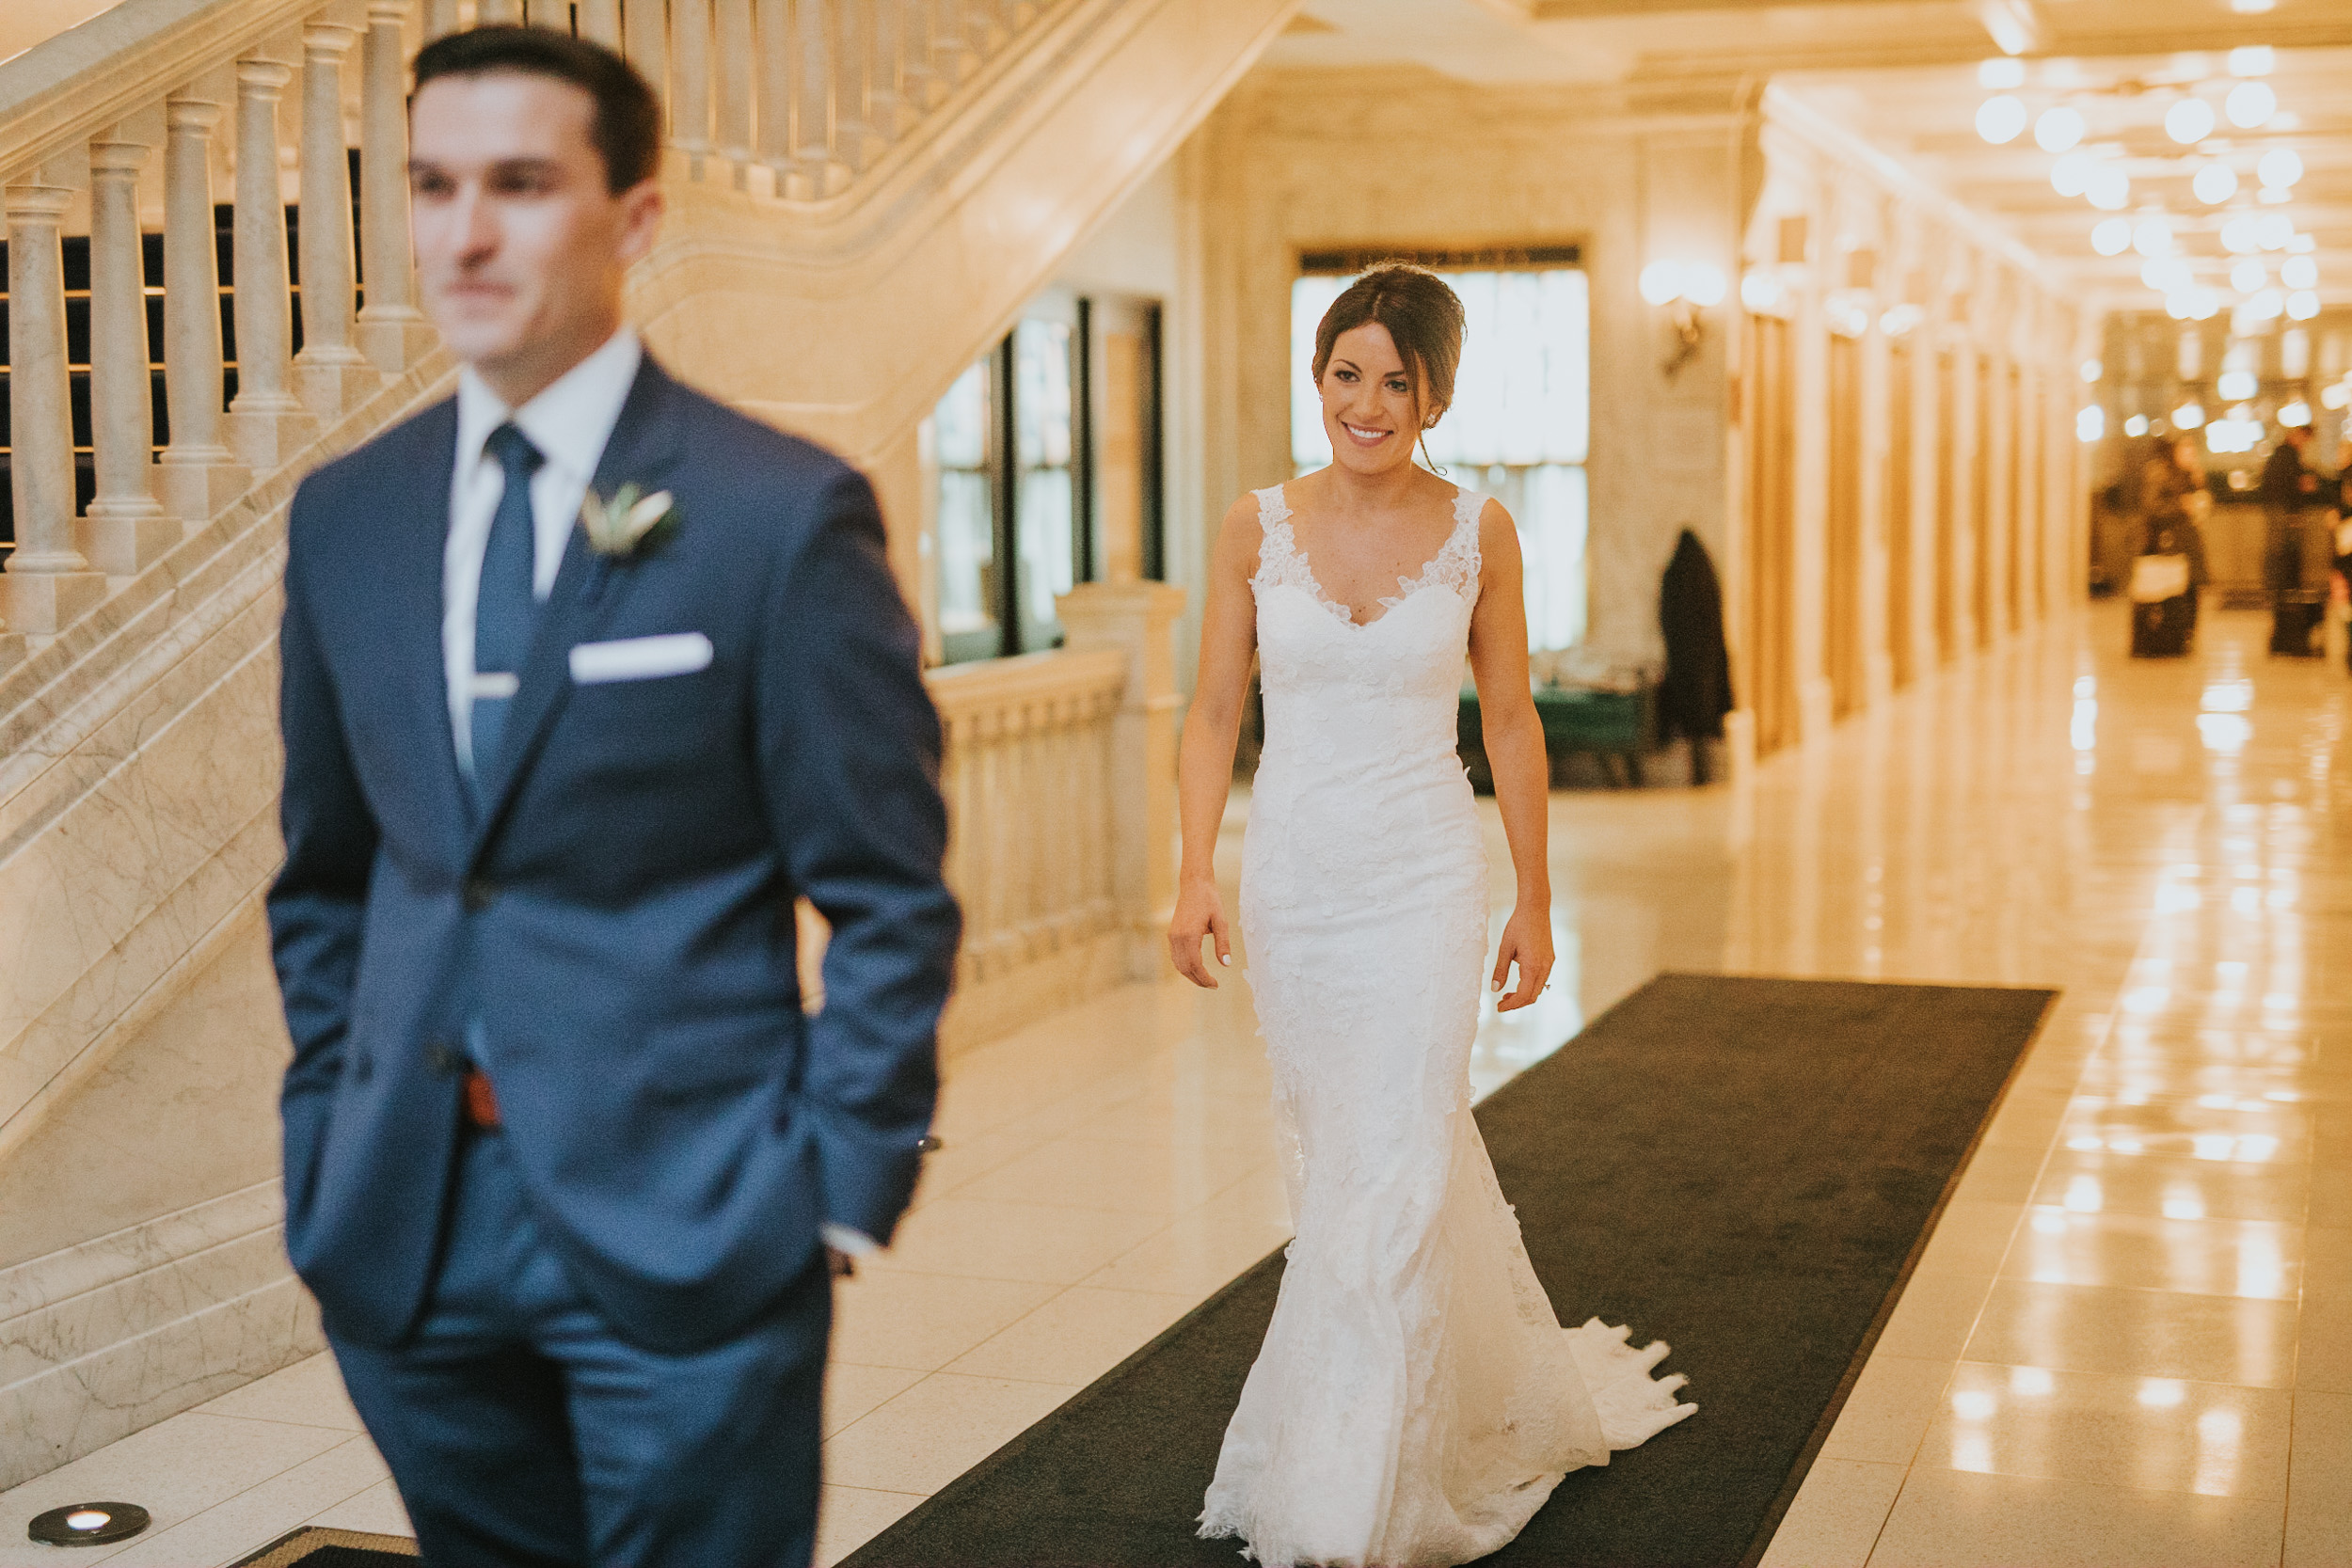 HaroldWashingtonLibraryWedding_Polly C Photography 1704140759.jpg